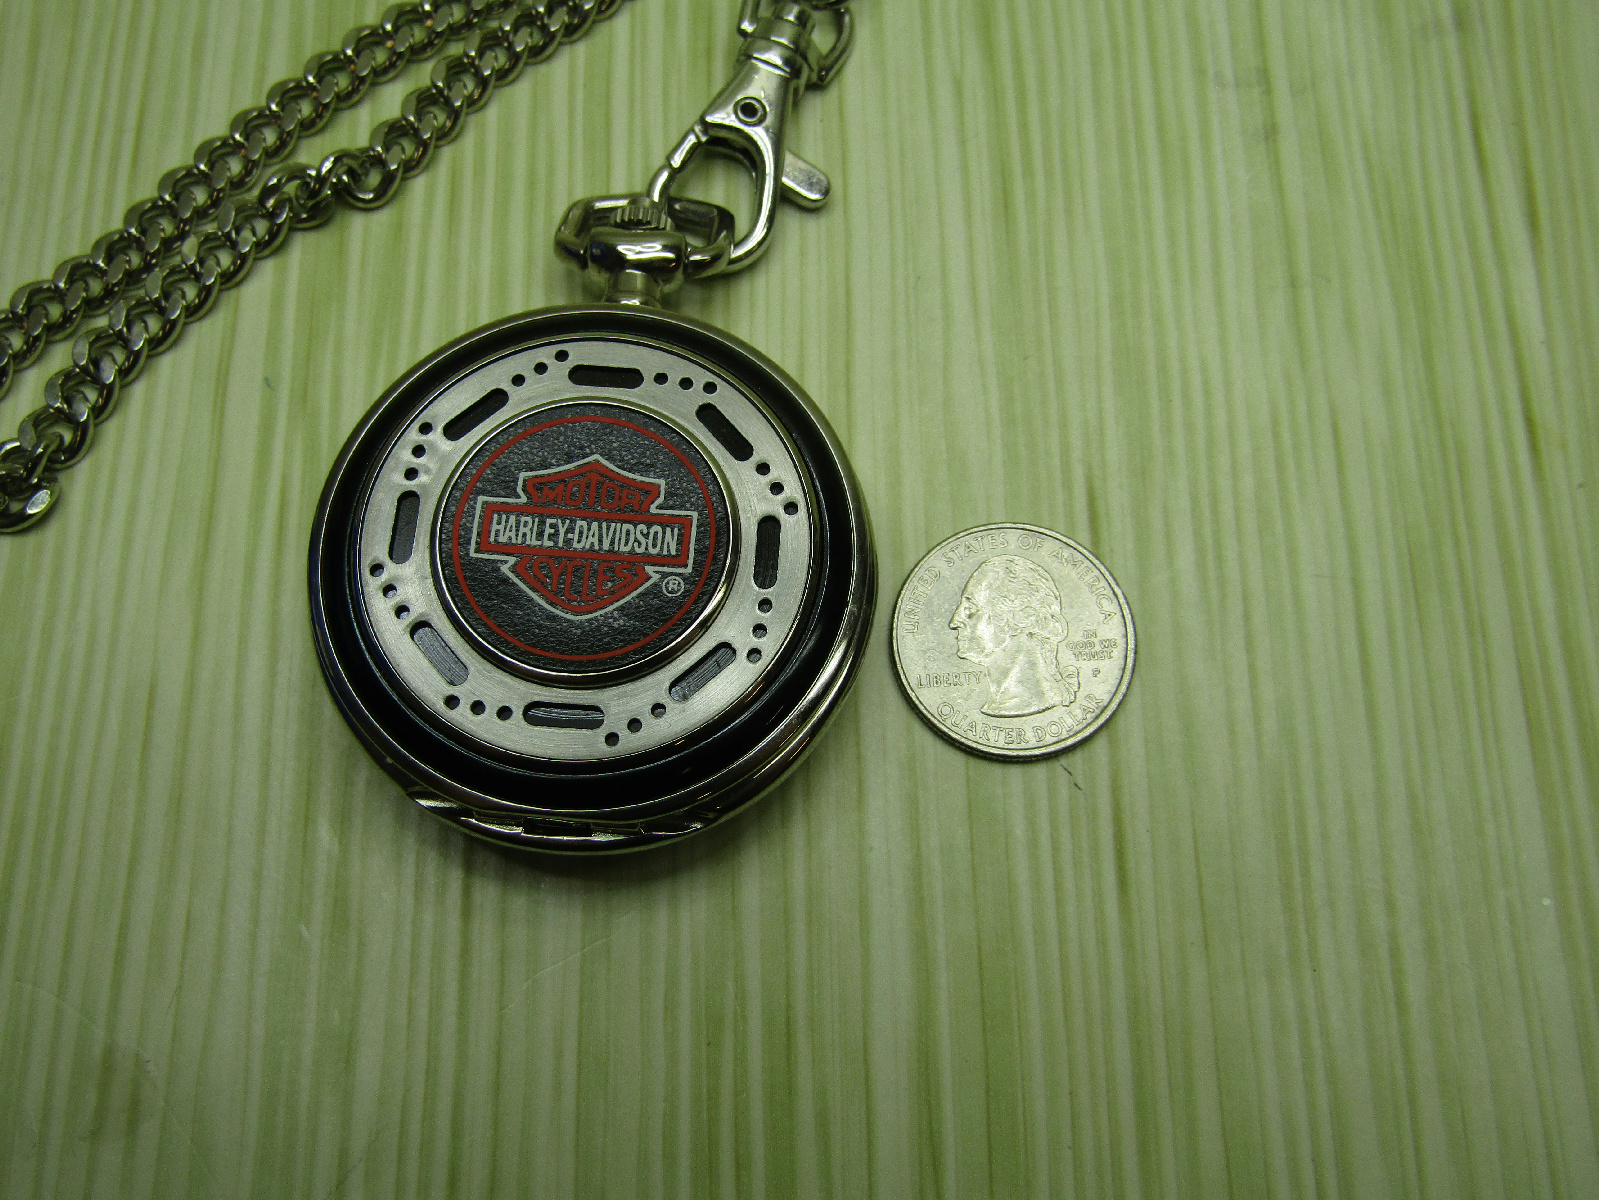 Harley davidson franklin mint jewelry collector pocket for Harley davidson jewelry ebay